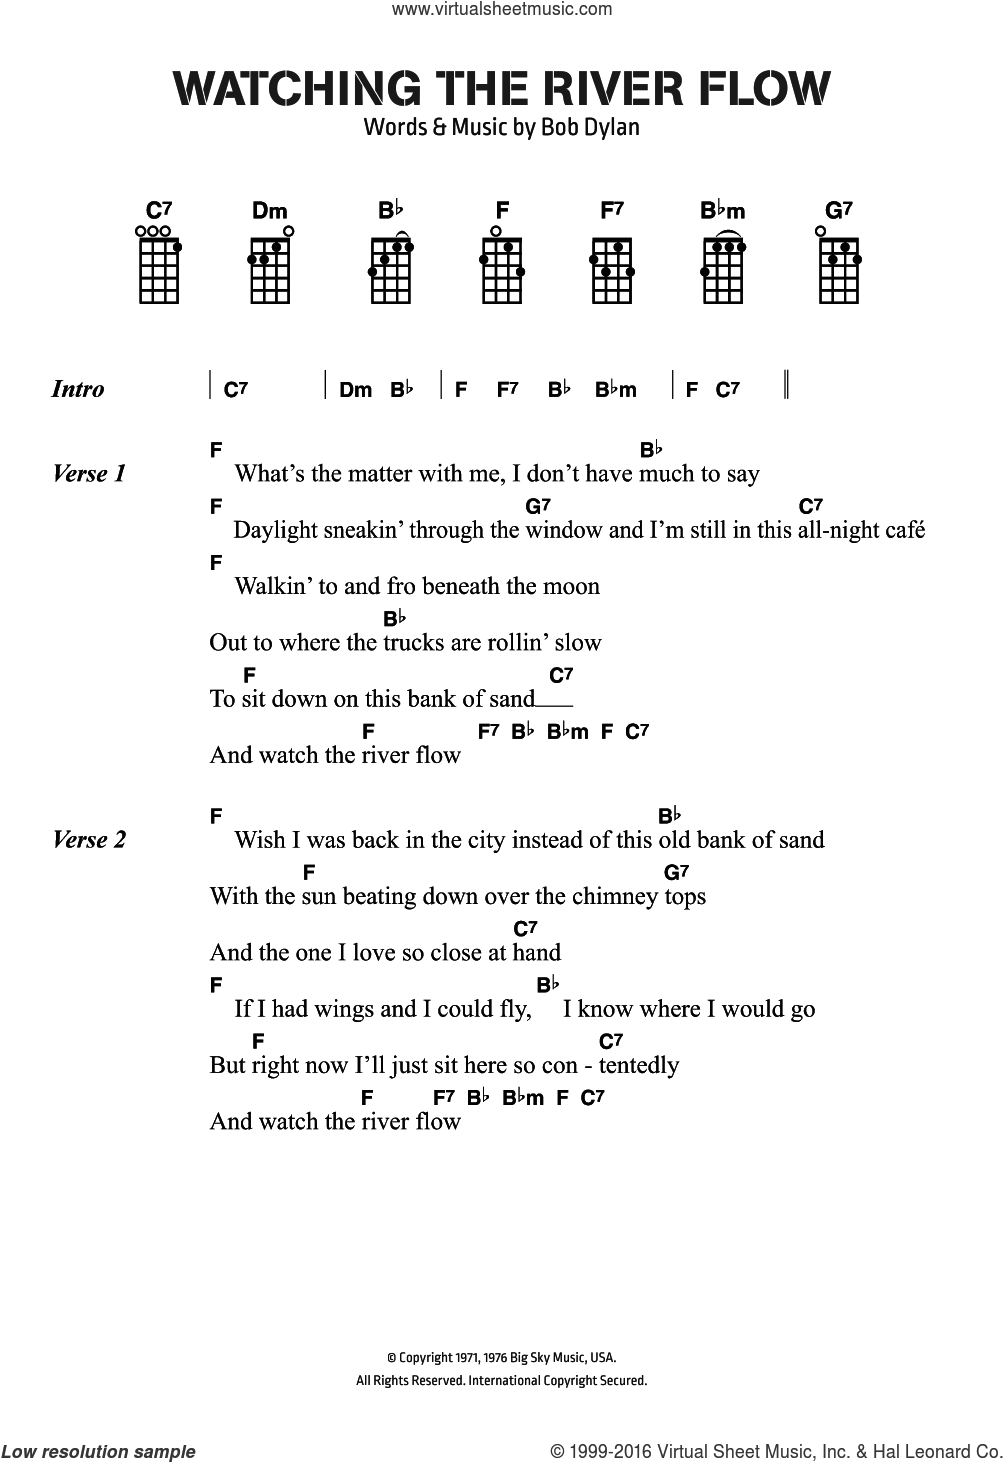 Watching The River Flow sheet music for ukulele (chords) by Bob Dylan, intermediate skill level